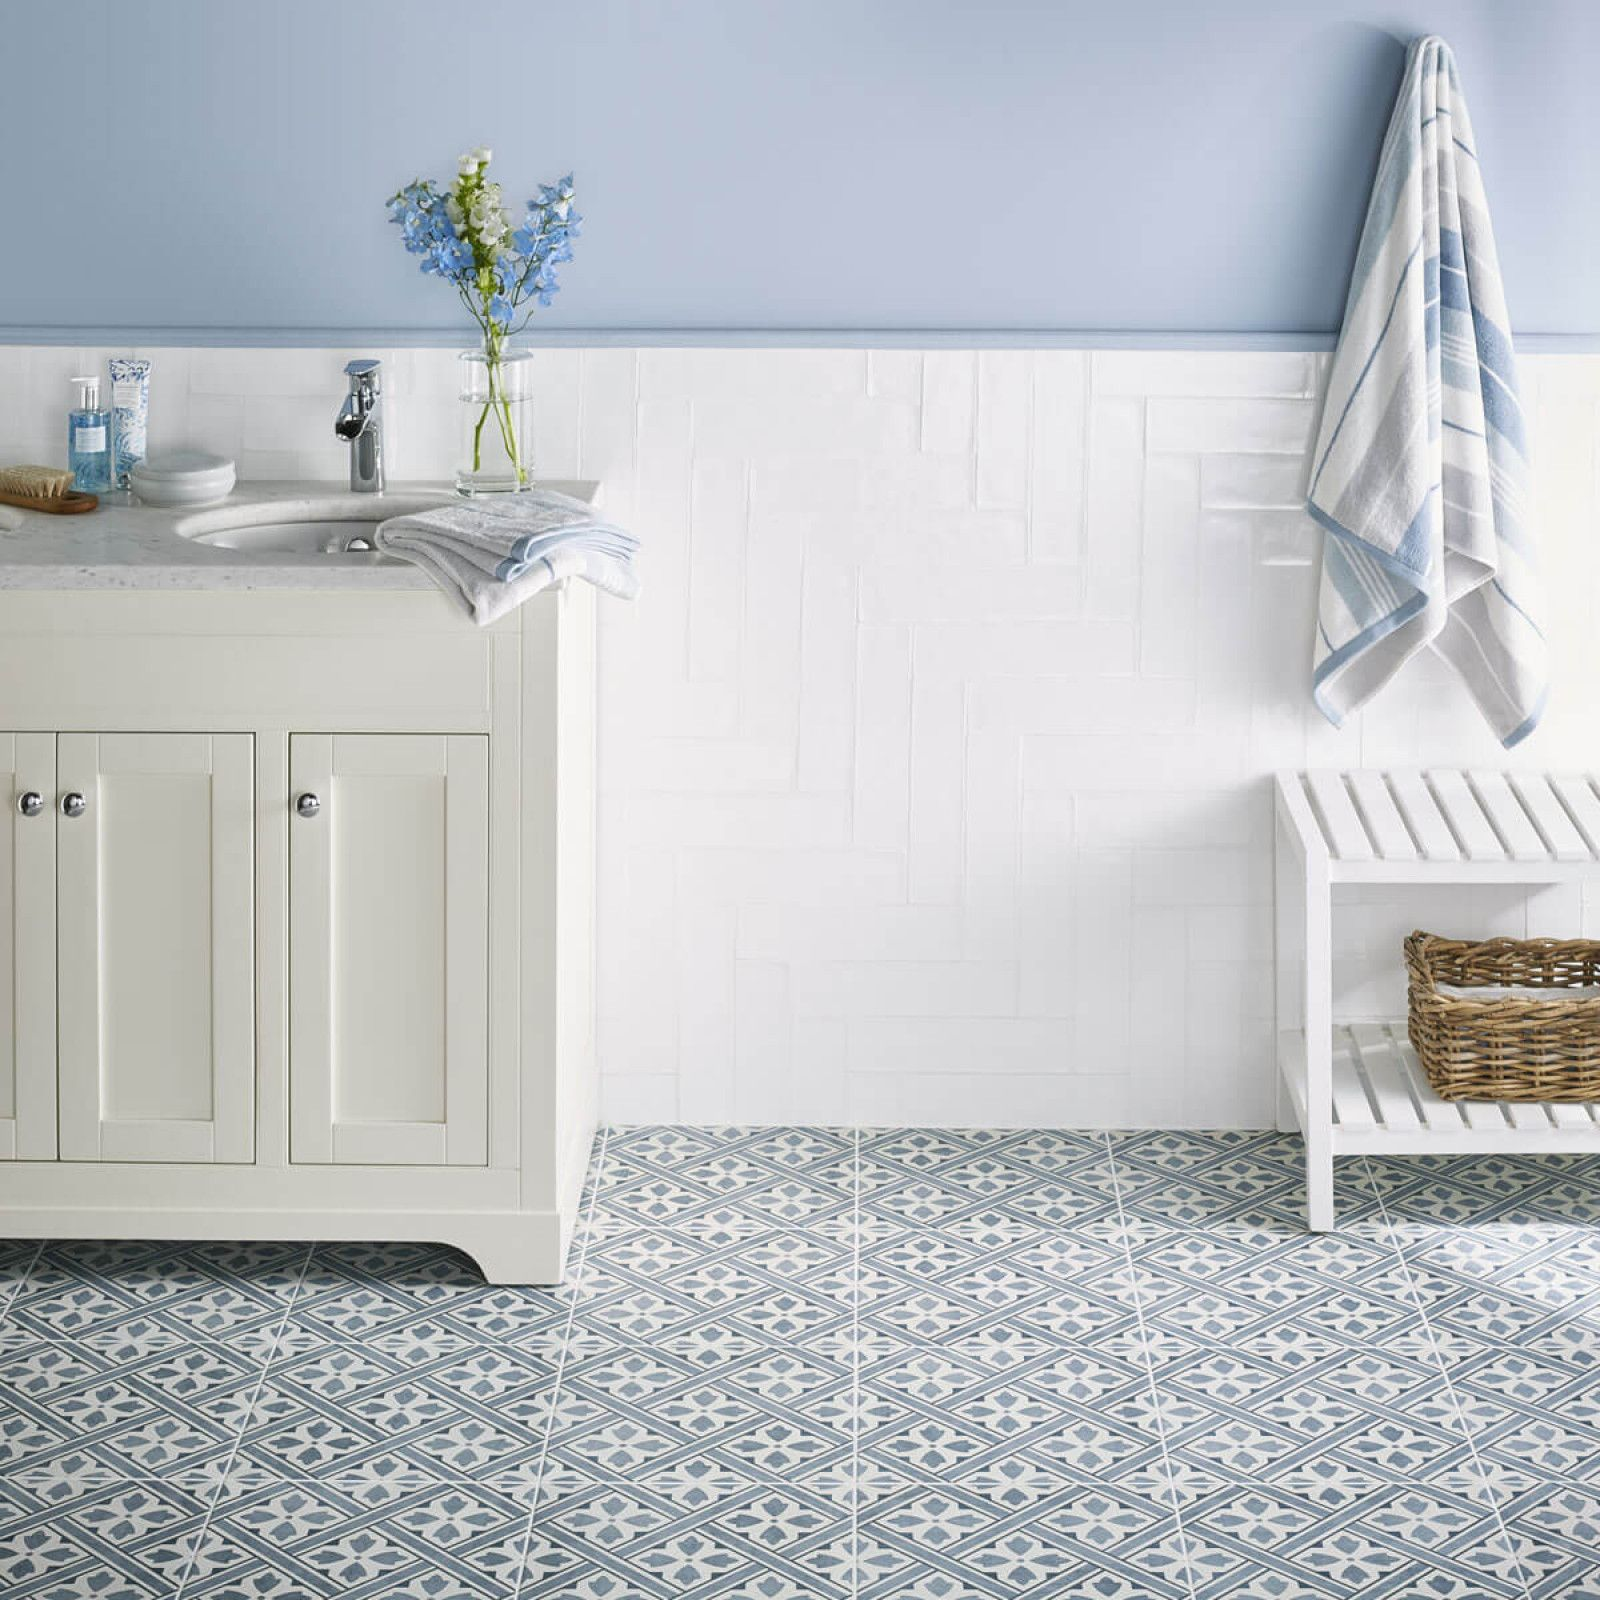 Laura Ashley Mr Jones Midnight British Ceramic Tile Laura Ashley Bathroom Tiles Tile Floor Laura Ashley Bathroom